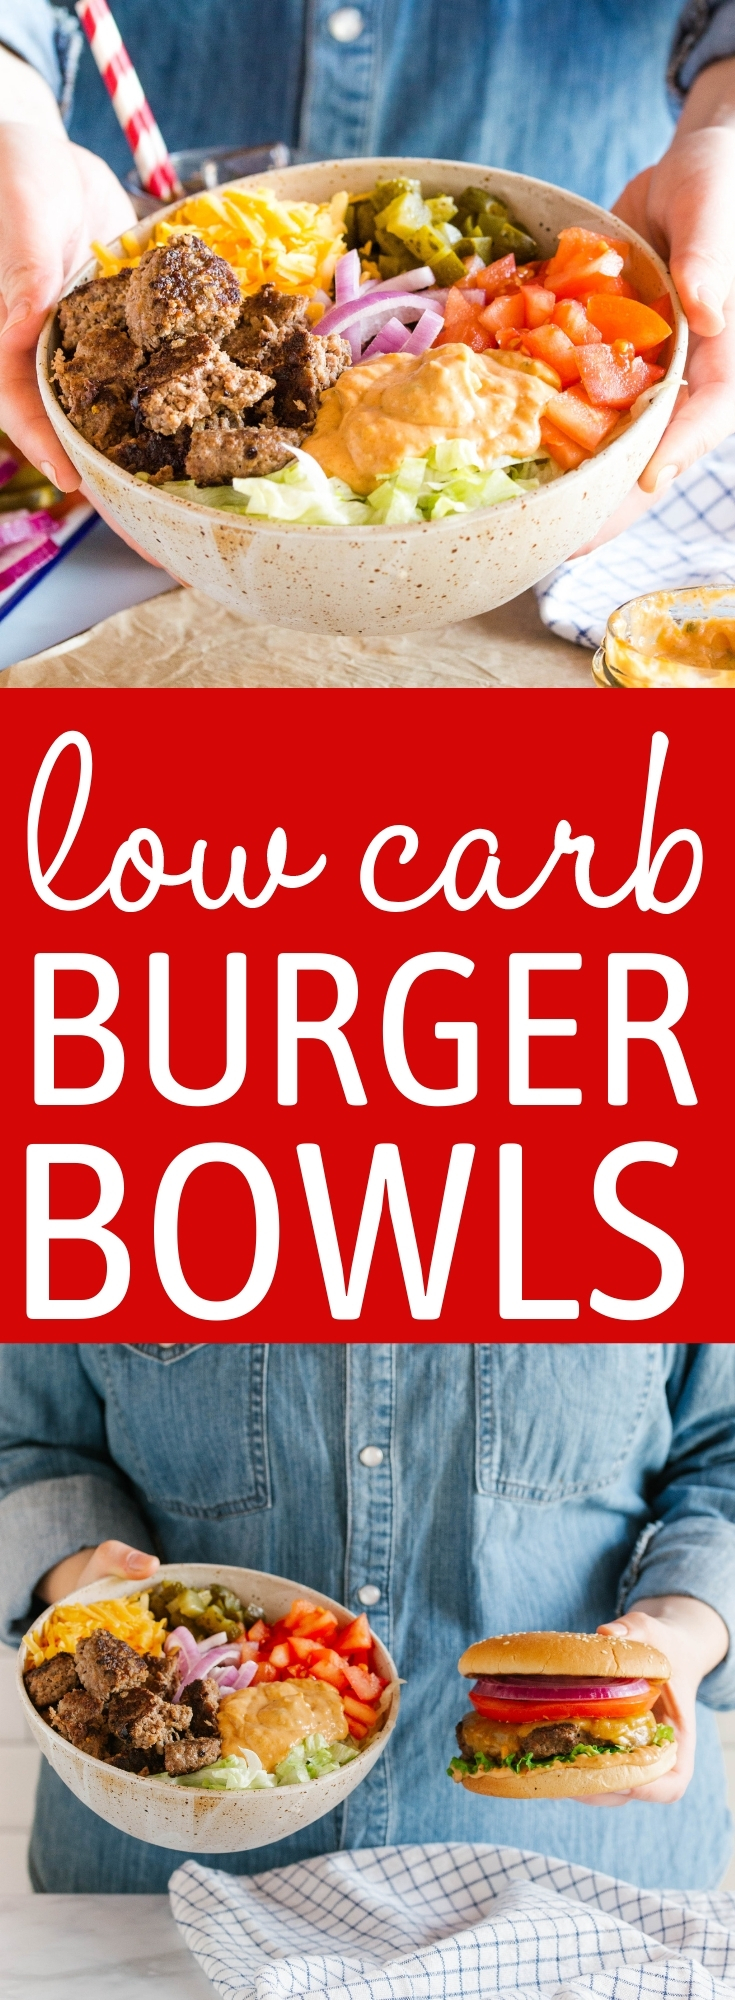 These Keto Burgers in a Bowl are the perfect low carb burger for summer! Made with juicy homemade burger patties, lettuce, cheese, pickles, tomatoes, onions and a secret burger sauce! Recipe from thebusybaker.ca! #keto #burgers #lowcarb #barbecue #summerrecipe #dinner #easytomake #recipe via @busybakerblog